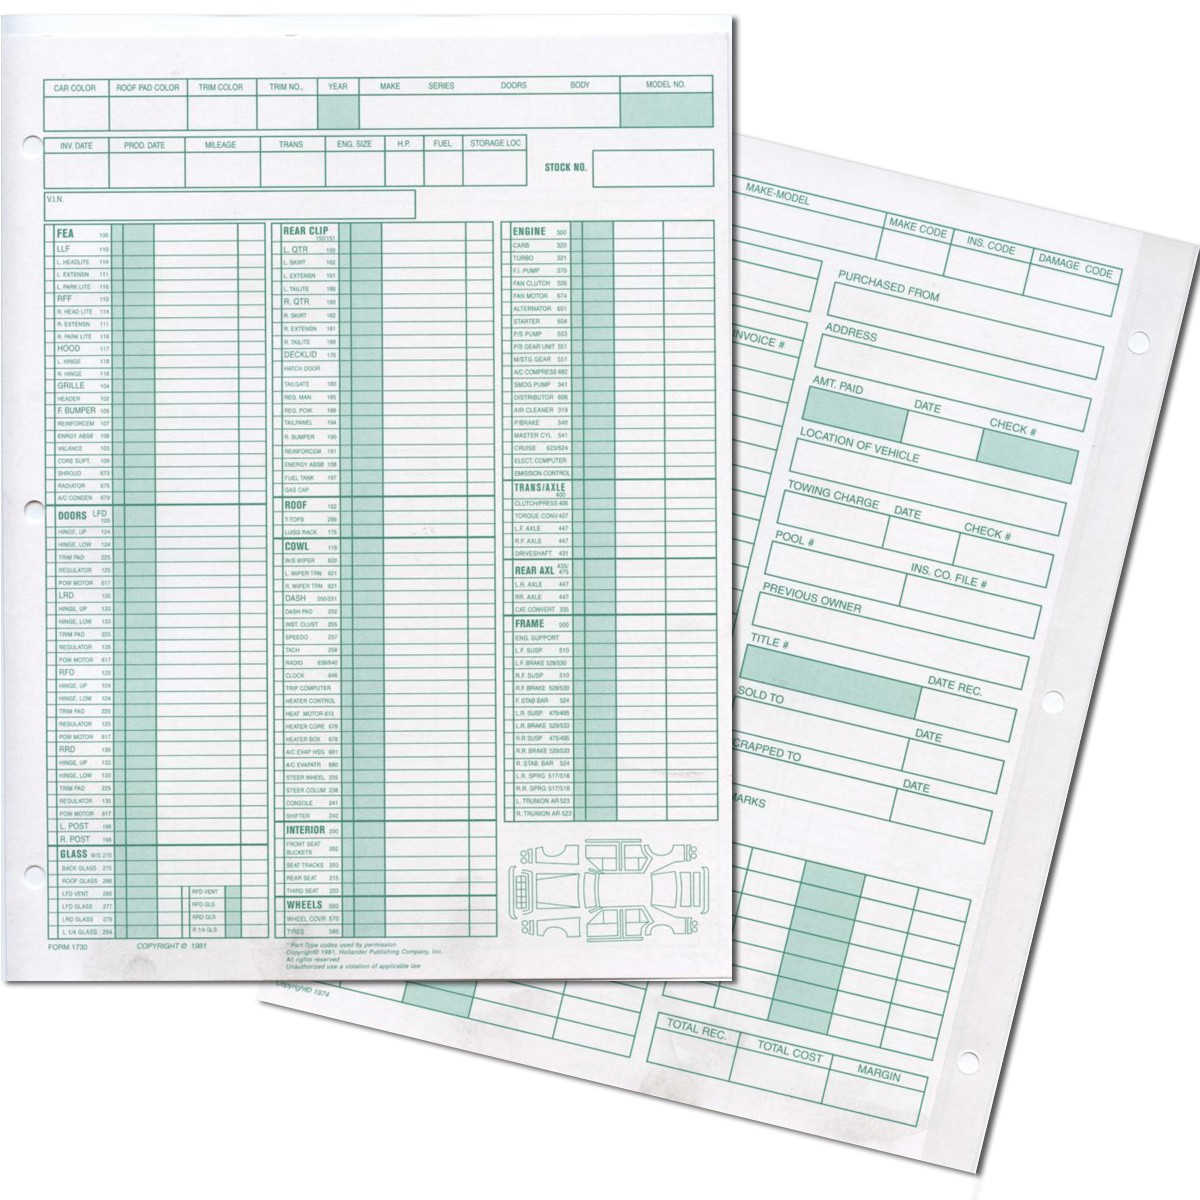 forms for manual inventory of cars parts